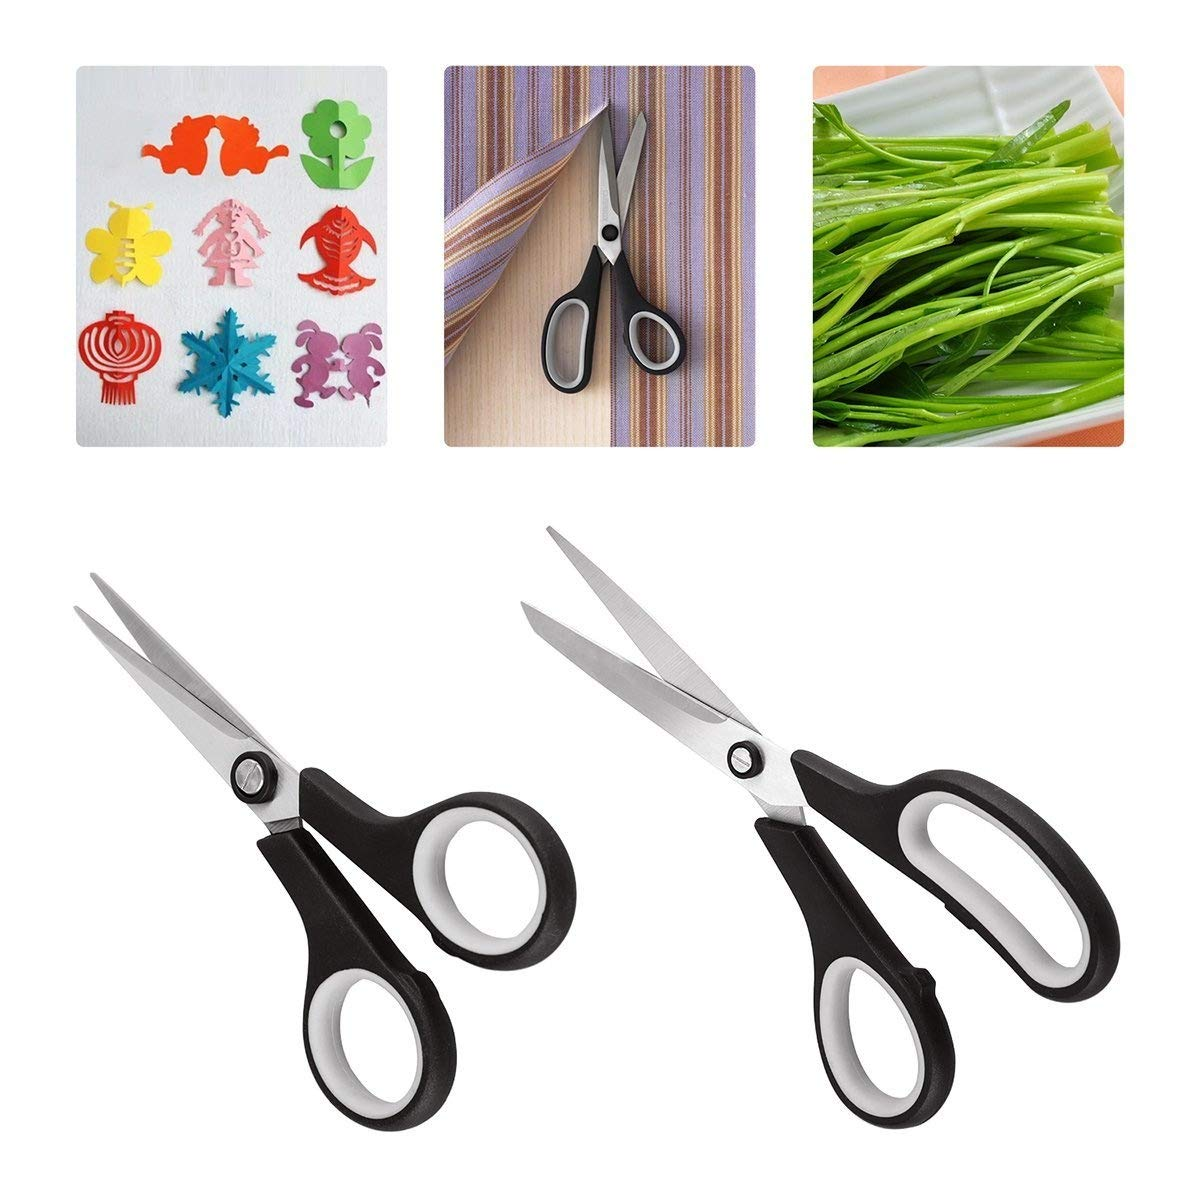 Scissors Set, CUSIBOX 3-Pack Multipurpose Scissors for Office, School, Kitchen, Sewing, Art and Craft Activities, Durable Design, Comfort Grip and Razor Sharp Blades